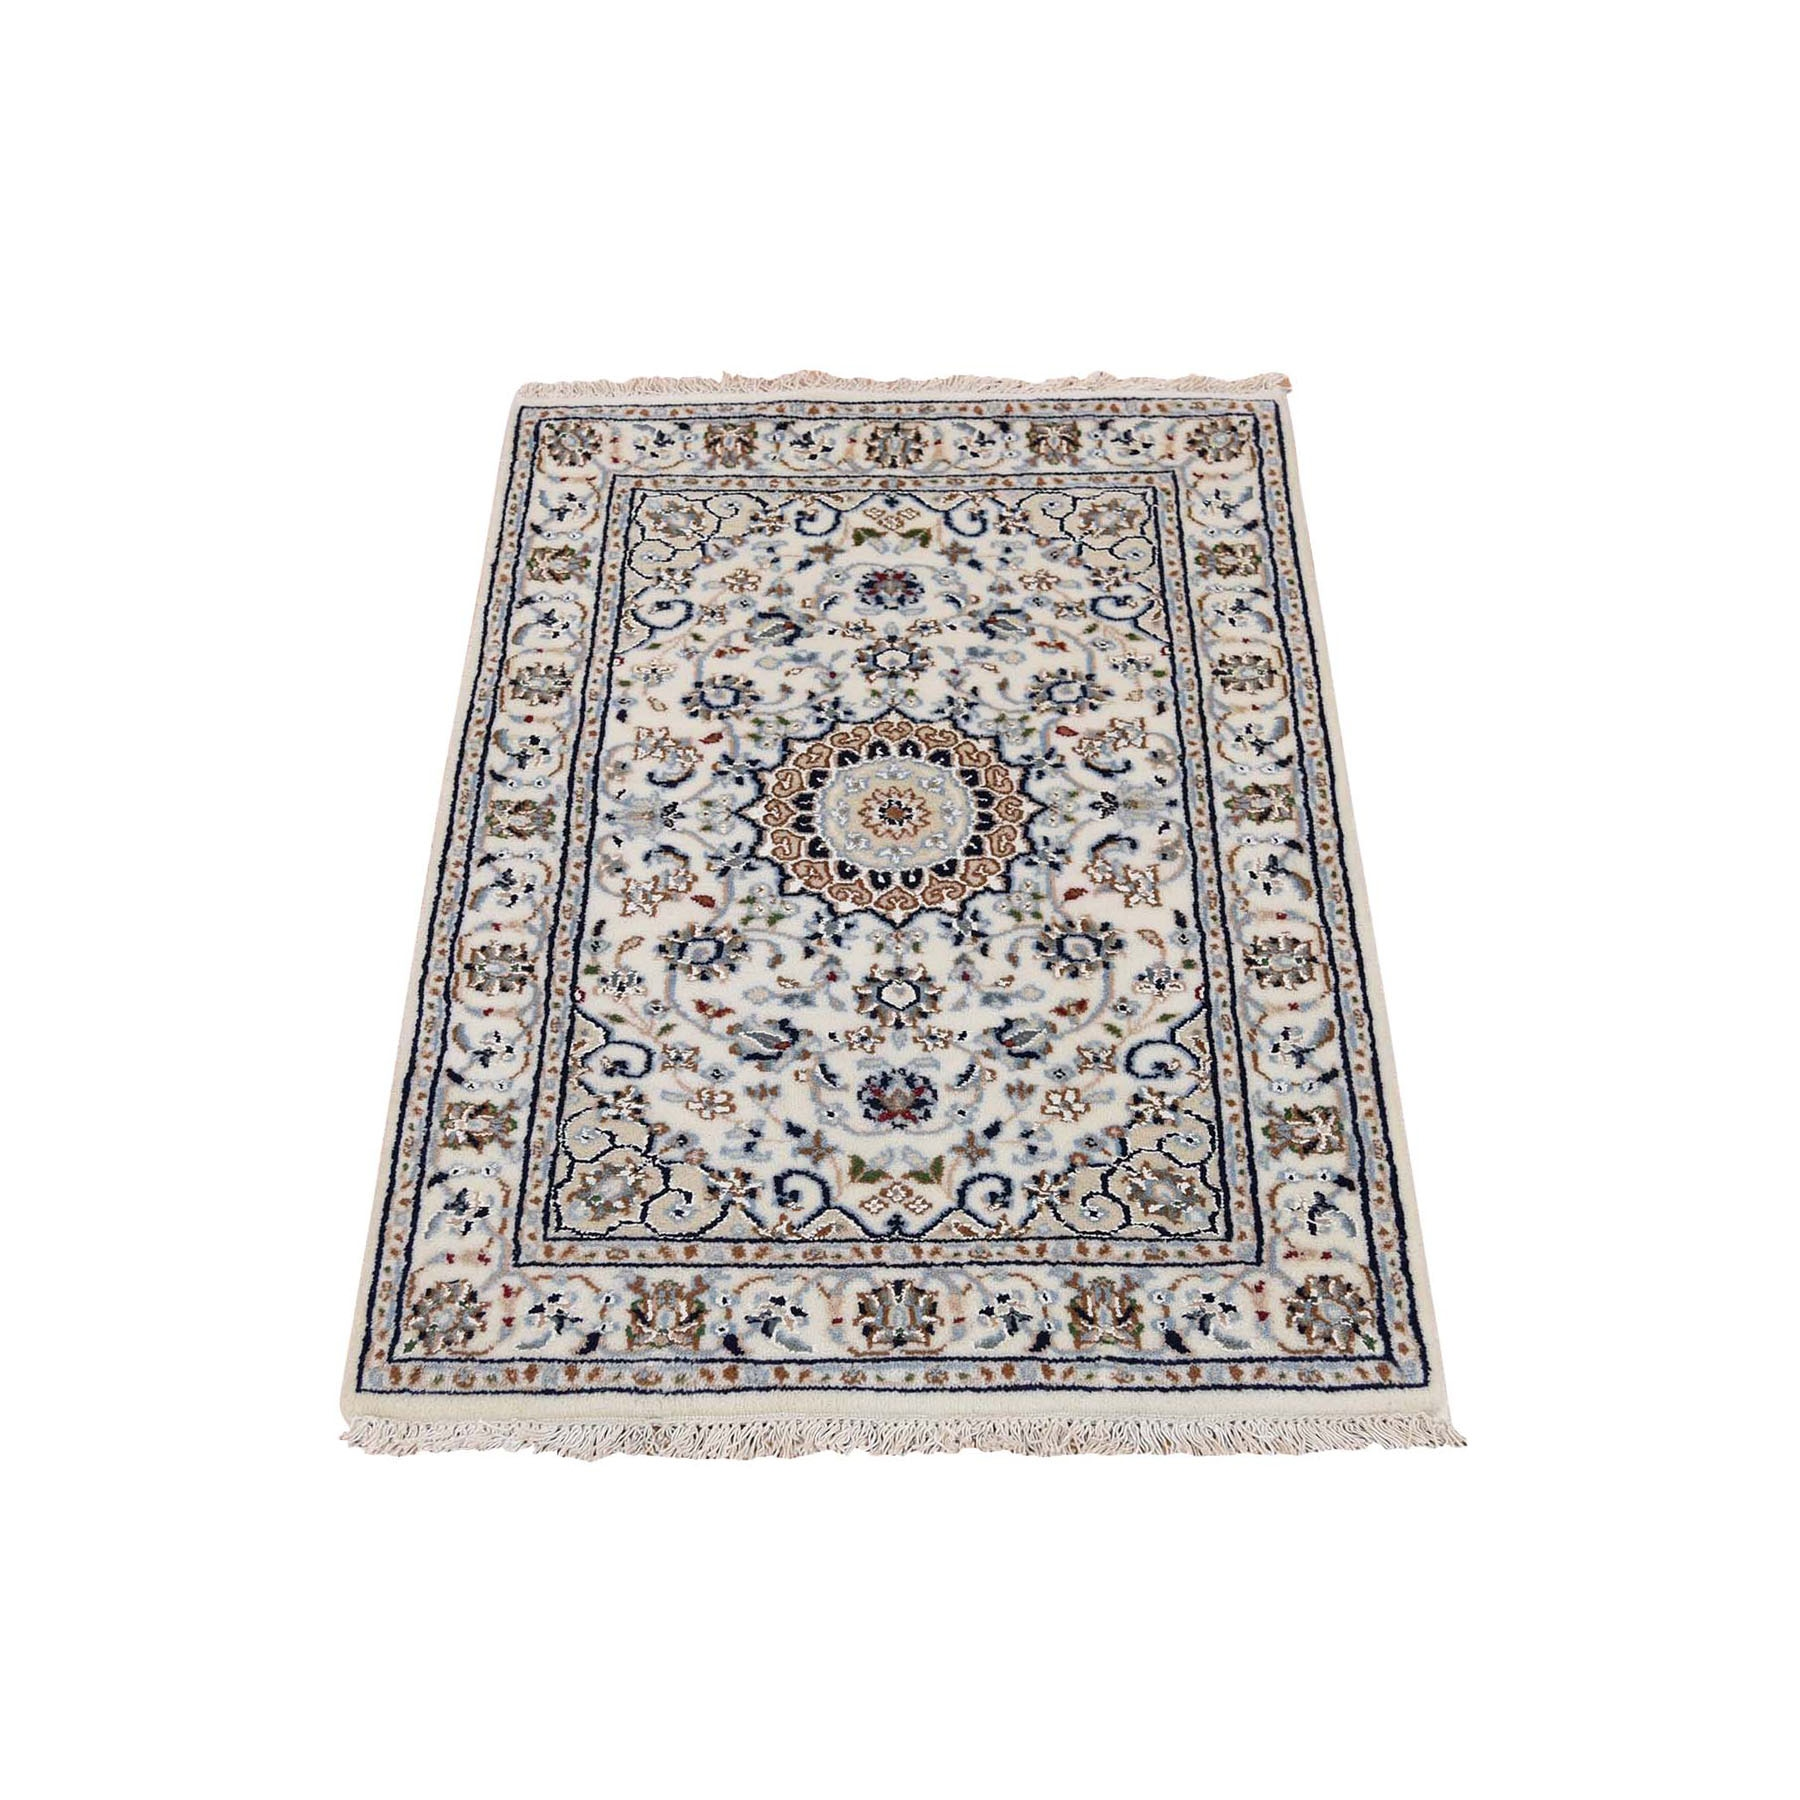 "2'x3'1"" Ivory Nain Wool And Silk 250 KPSI Hand Woven Oriental Rug"